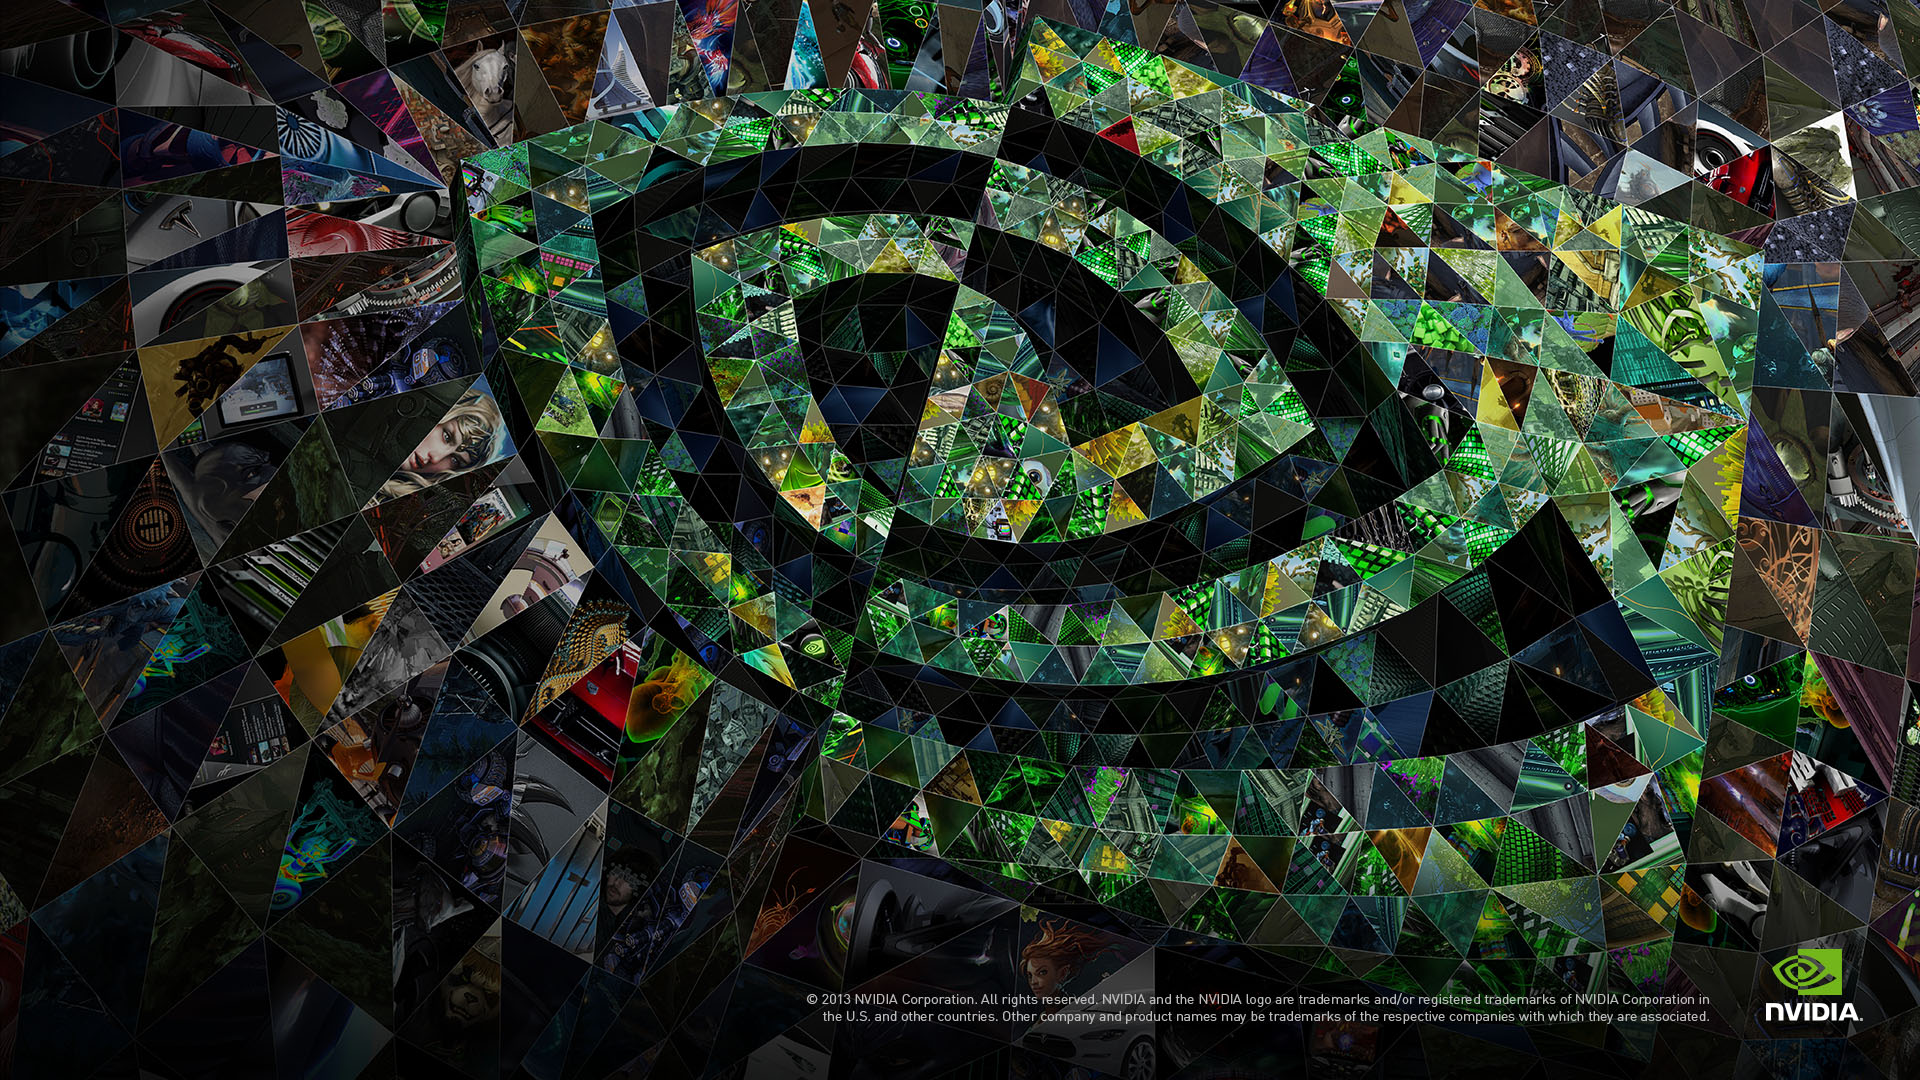 Nvidia GTX 980 Specs And Pricing Revealed